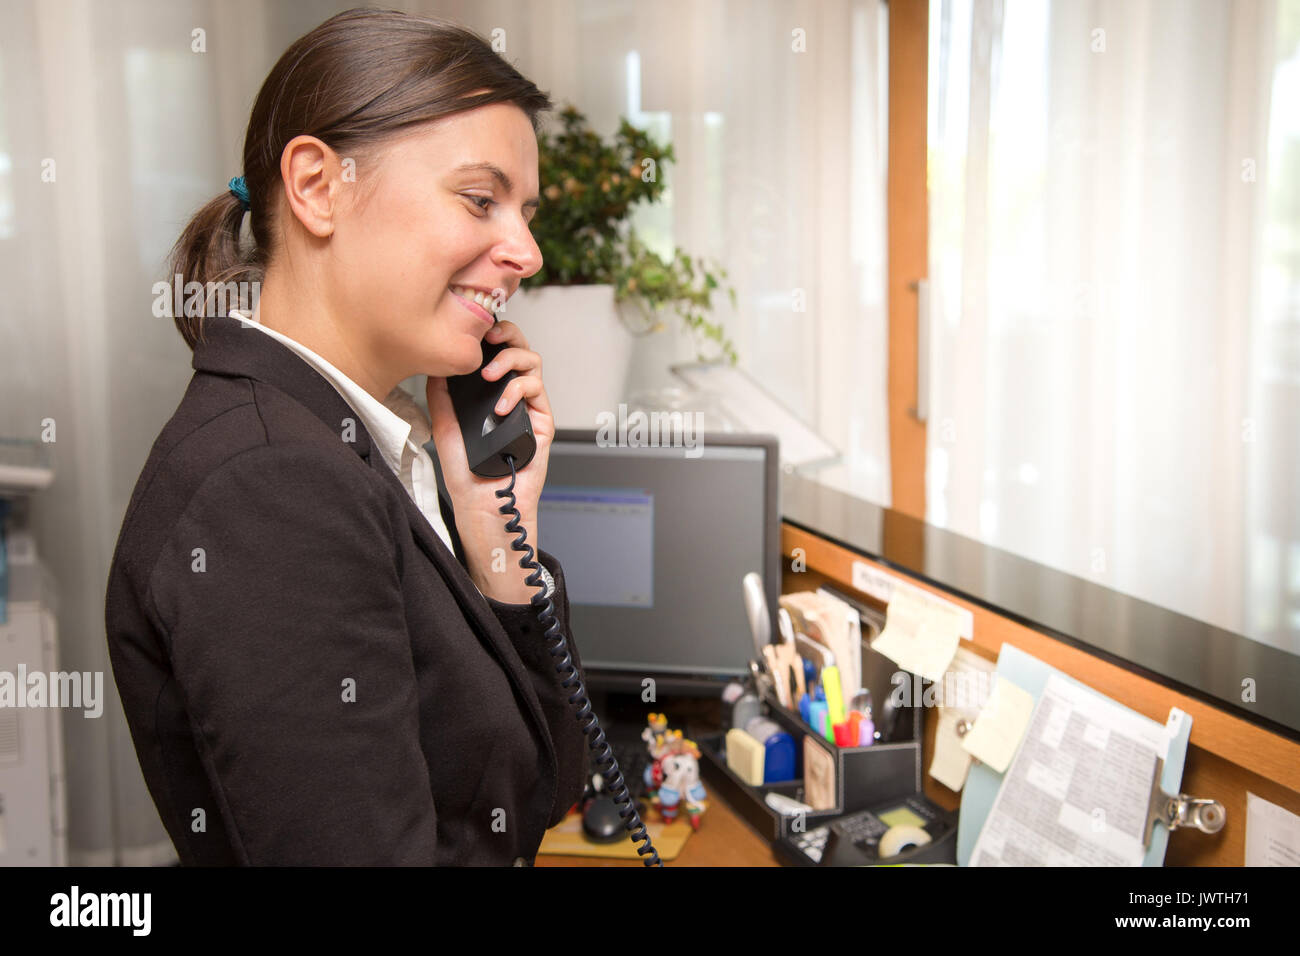 Professional receptionist answering to the phone call - Stock Image